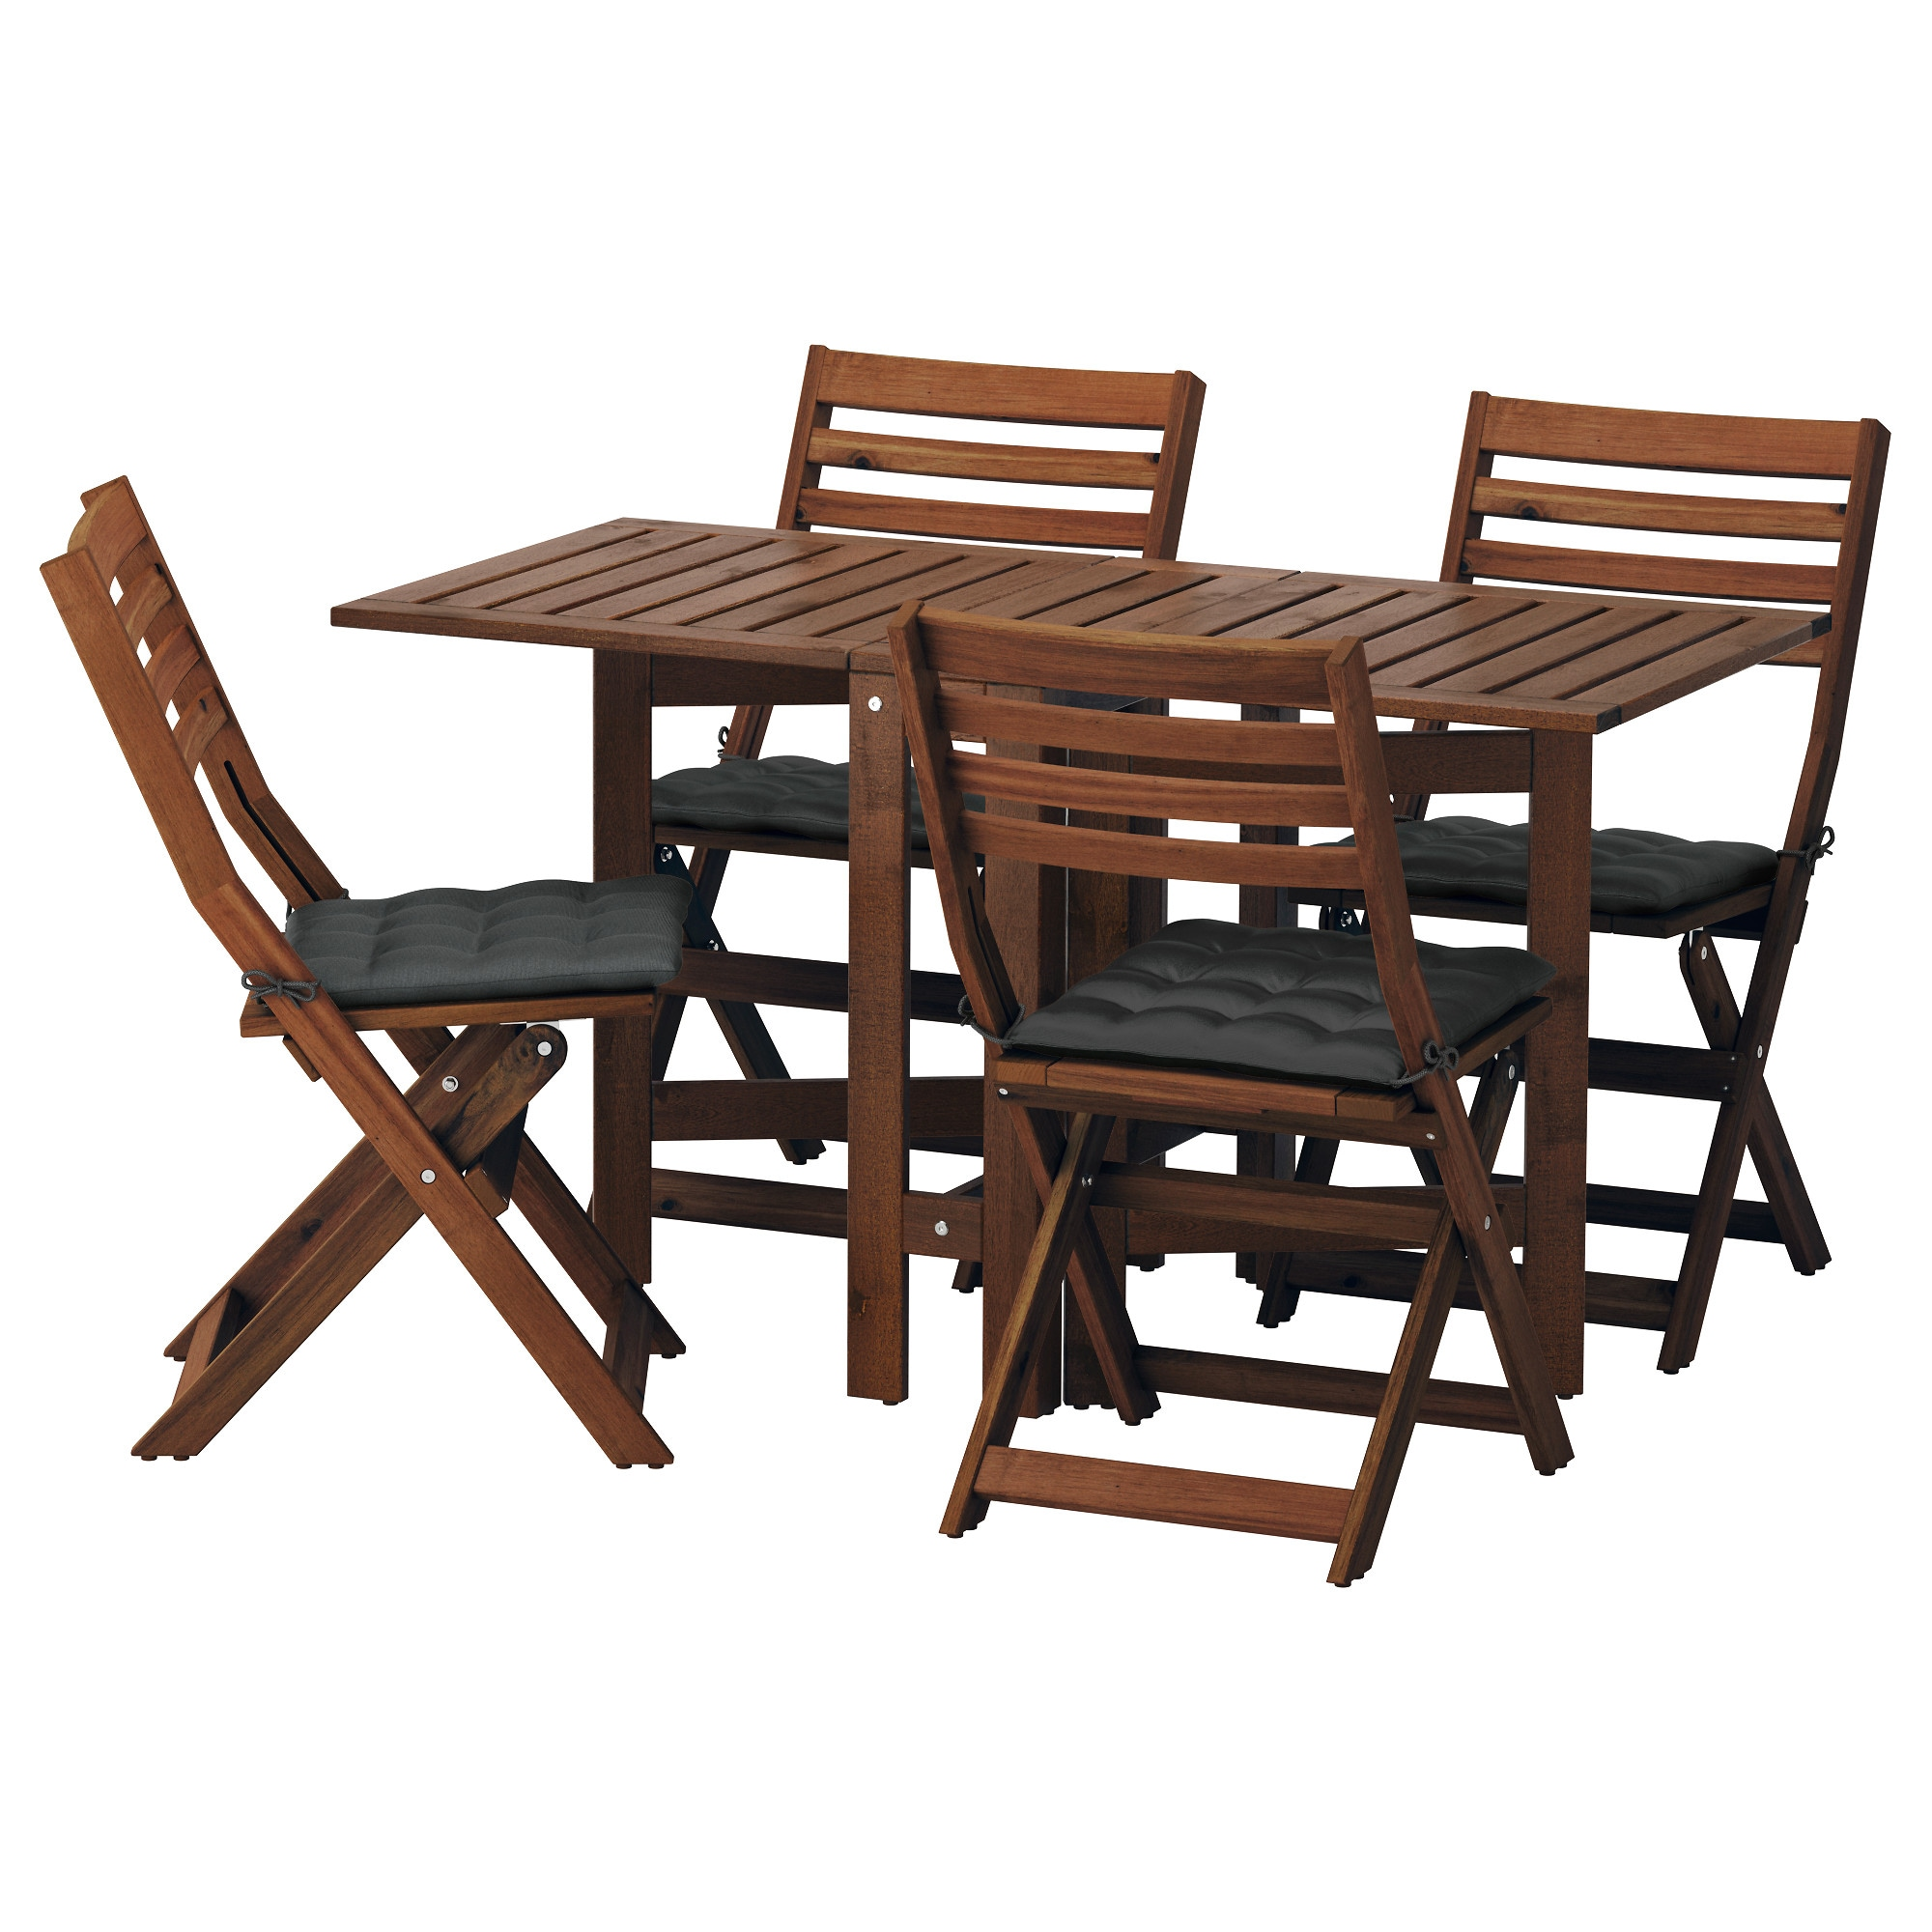 ÄPPLARÖ Table and 4 folding chairs, outdoor - Äpplarö brown stained ...